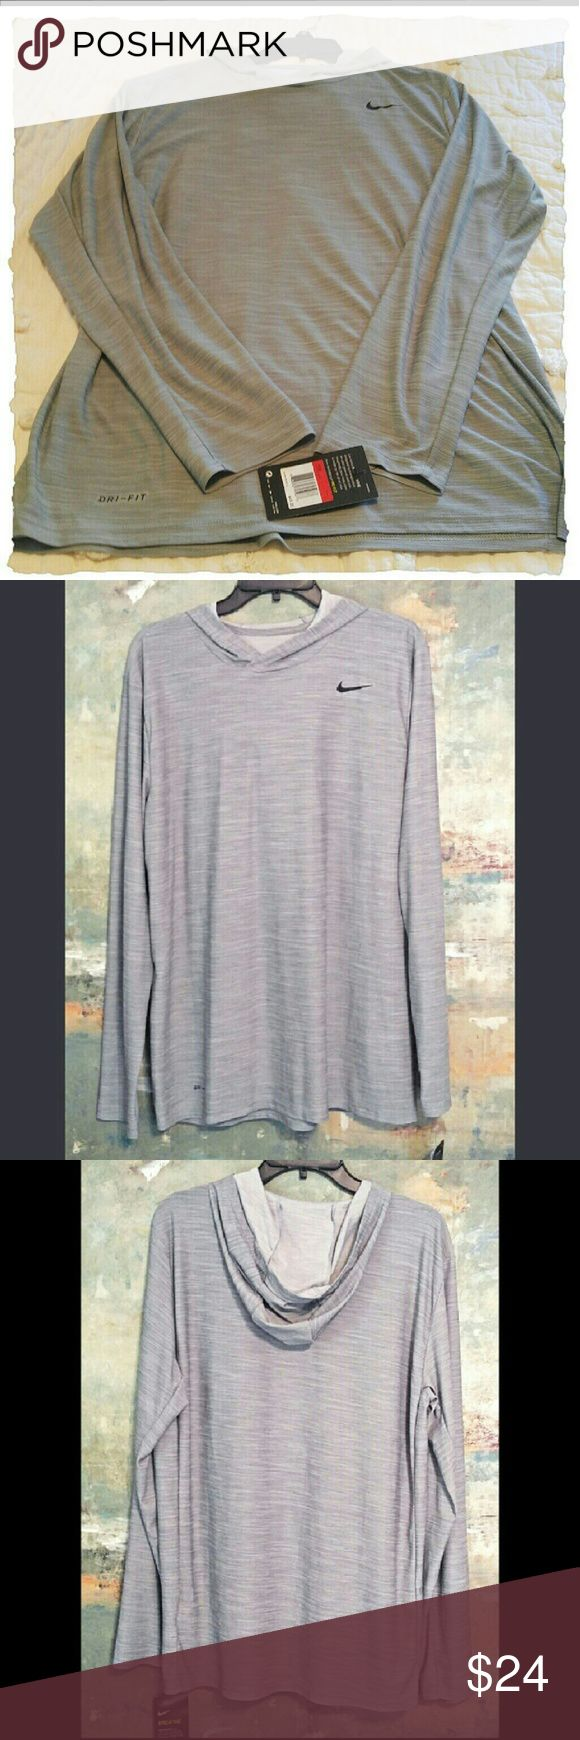 🆕🎉Men's Nike Dri Fit Hoodie Silky, breathable roomy size small men's. Nice grey feathered colour.  🎉FIRM PRICE unless bundled🎉Retails at $45🎉Ships within 24 hours🎉💕😃🎄 Nike Shirts Sweatshirts & Hoodies